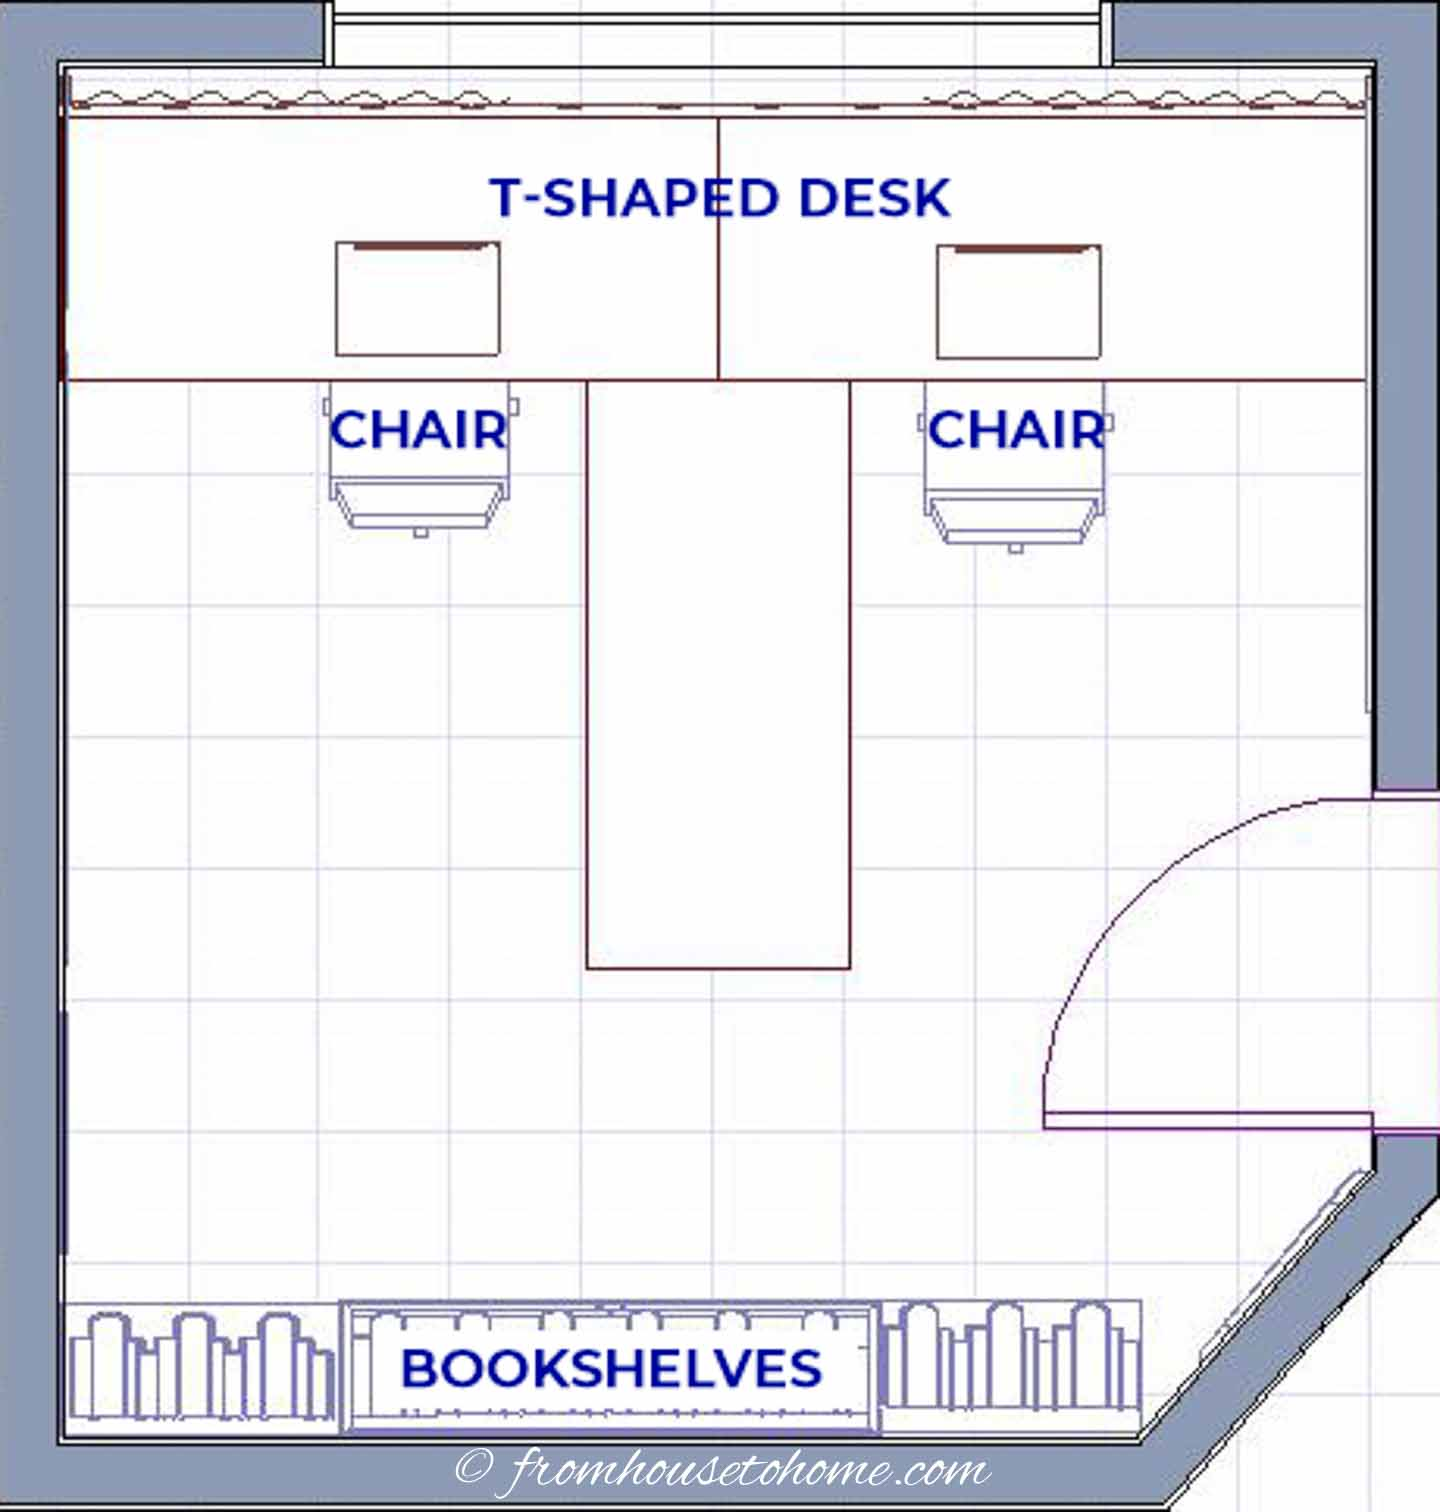 T-shaped desk in a small home office configuration